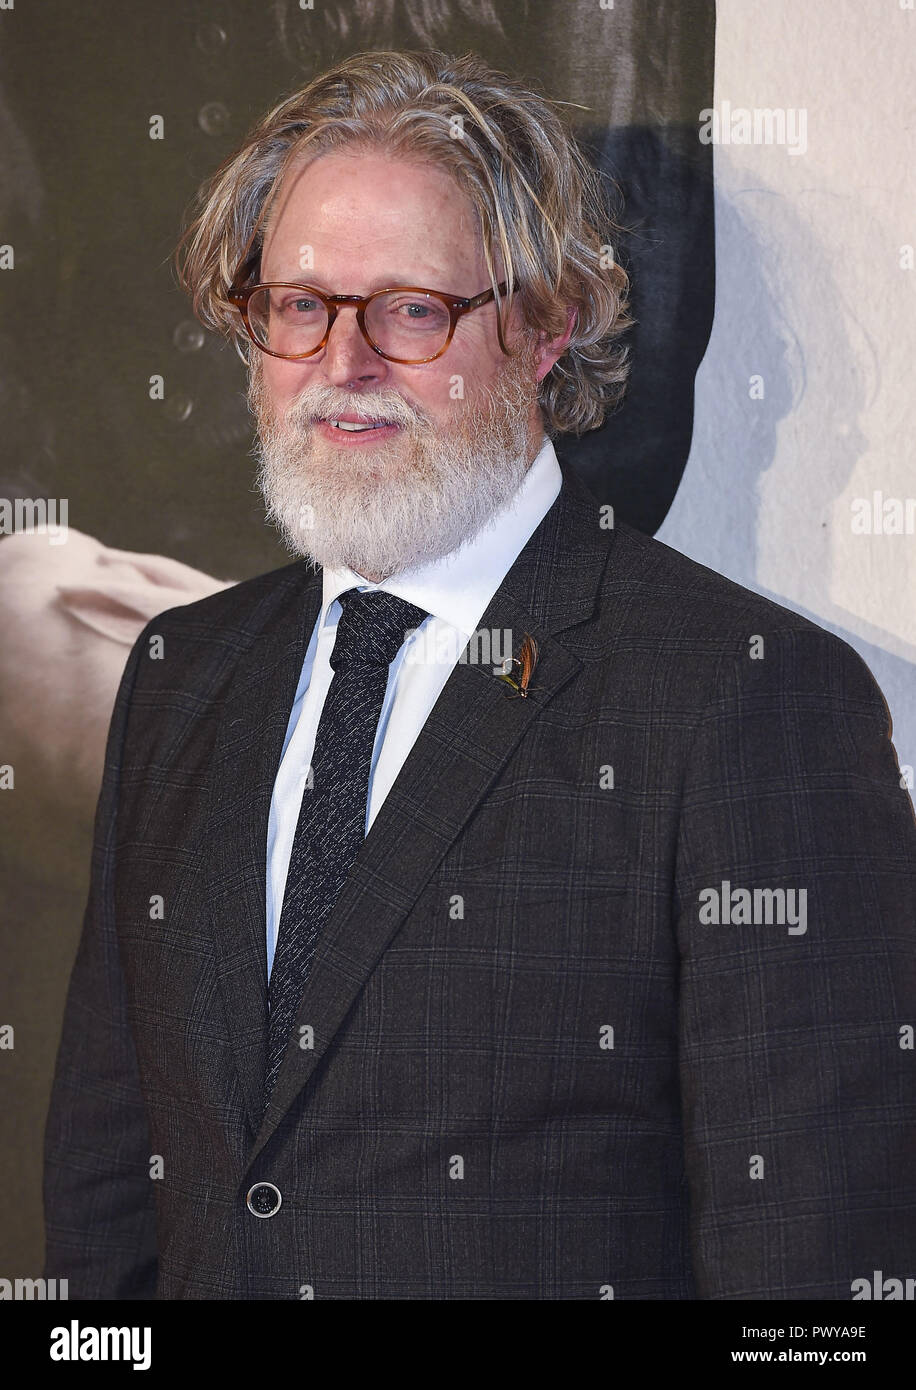 London, UK. 18th Oct, 2018. Tony McNamara attends the UK Premiere of 'The Favourite' & American Express Gala at the 62nd BFI London Film Festival. Credit: Gary Mitchell/SOPA Images/ZUMA Wire/Alamy Live News - Stock Image